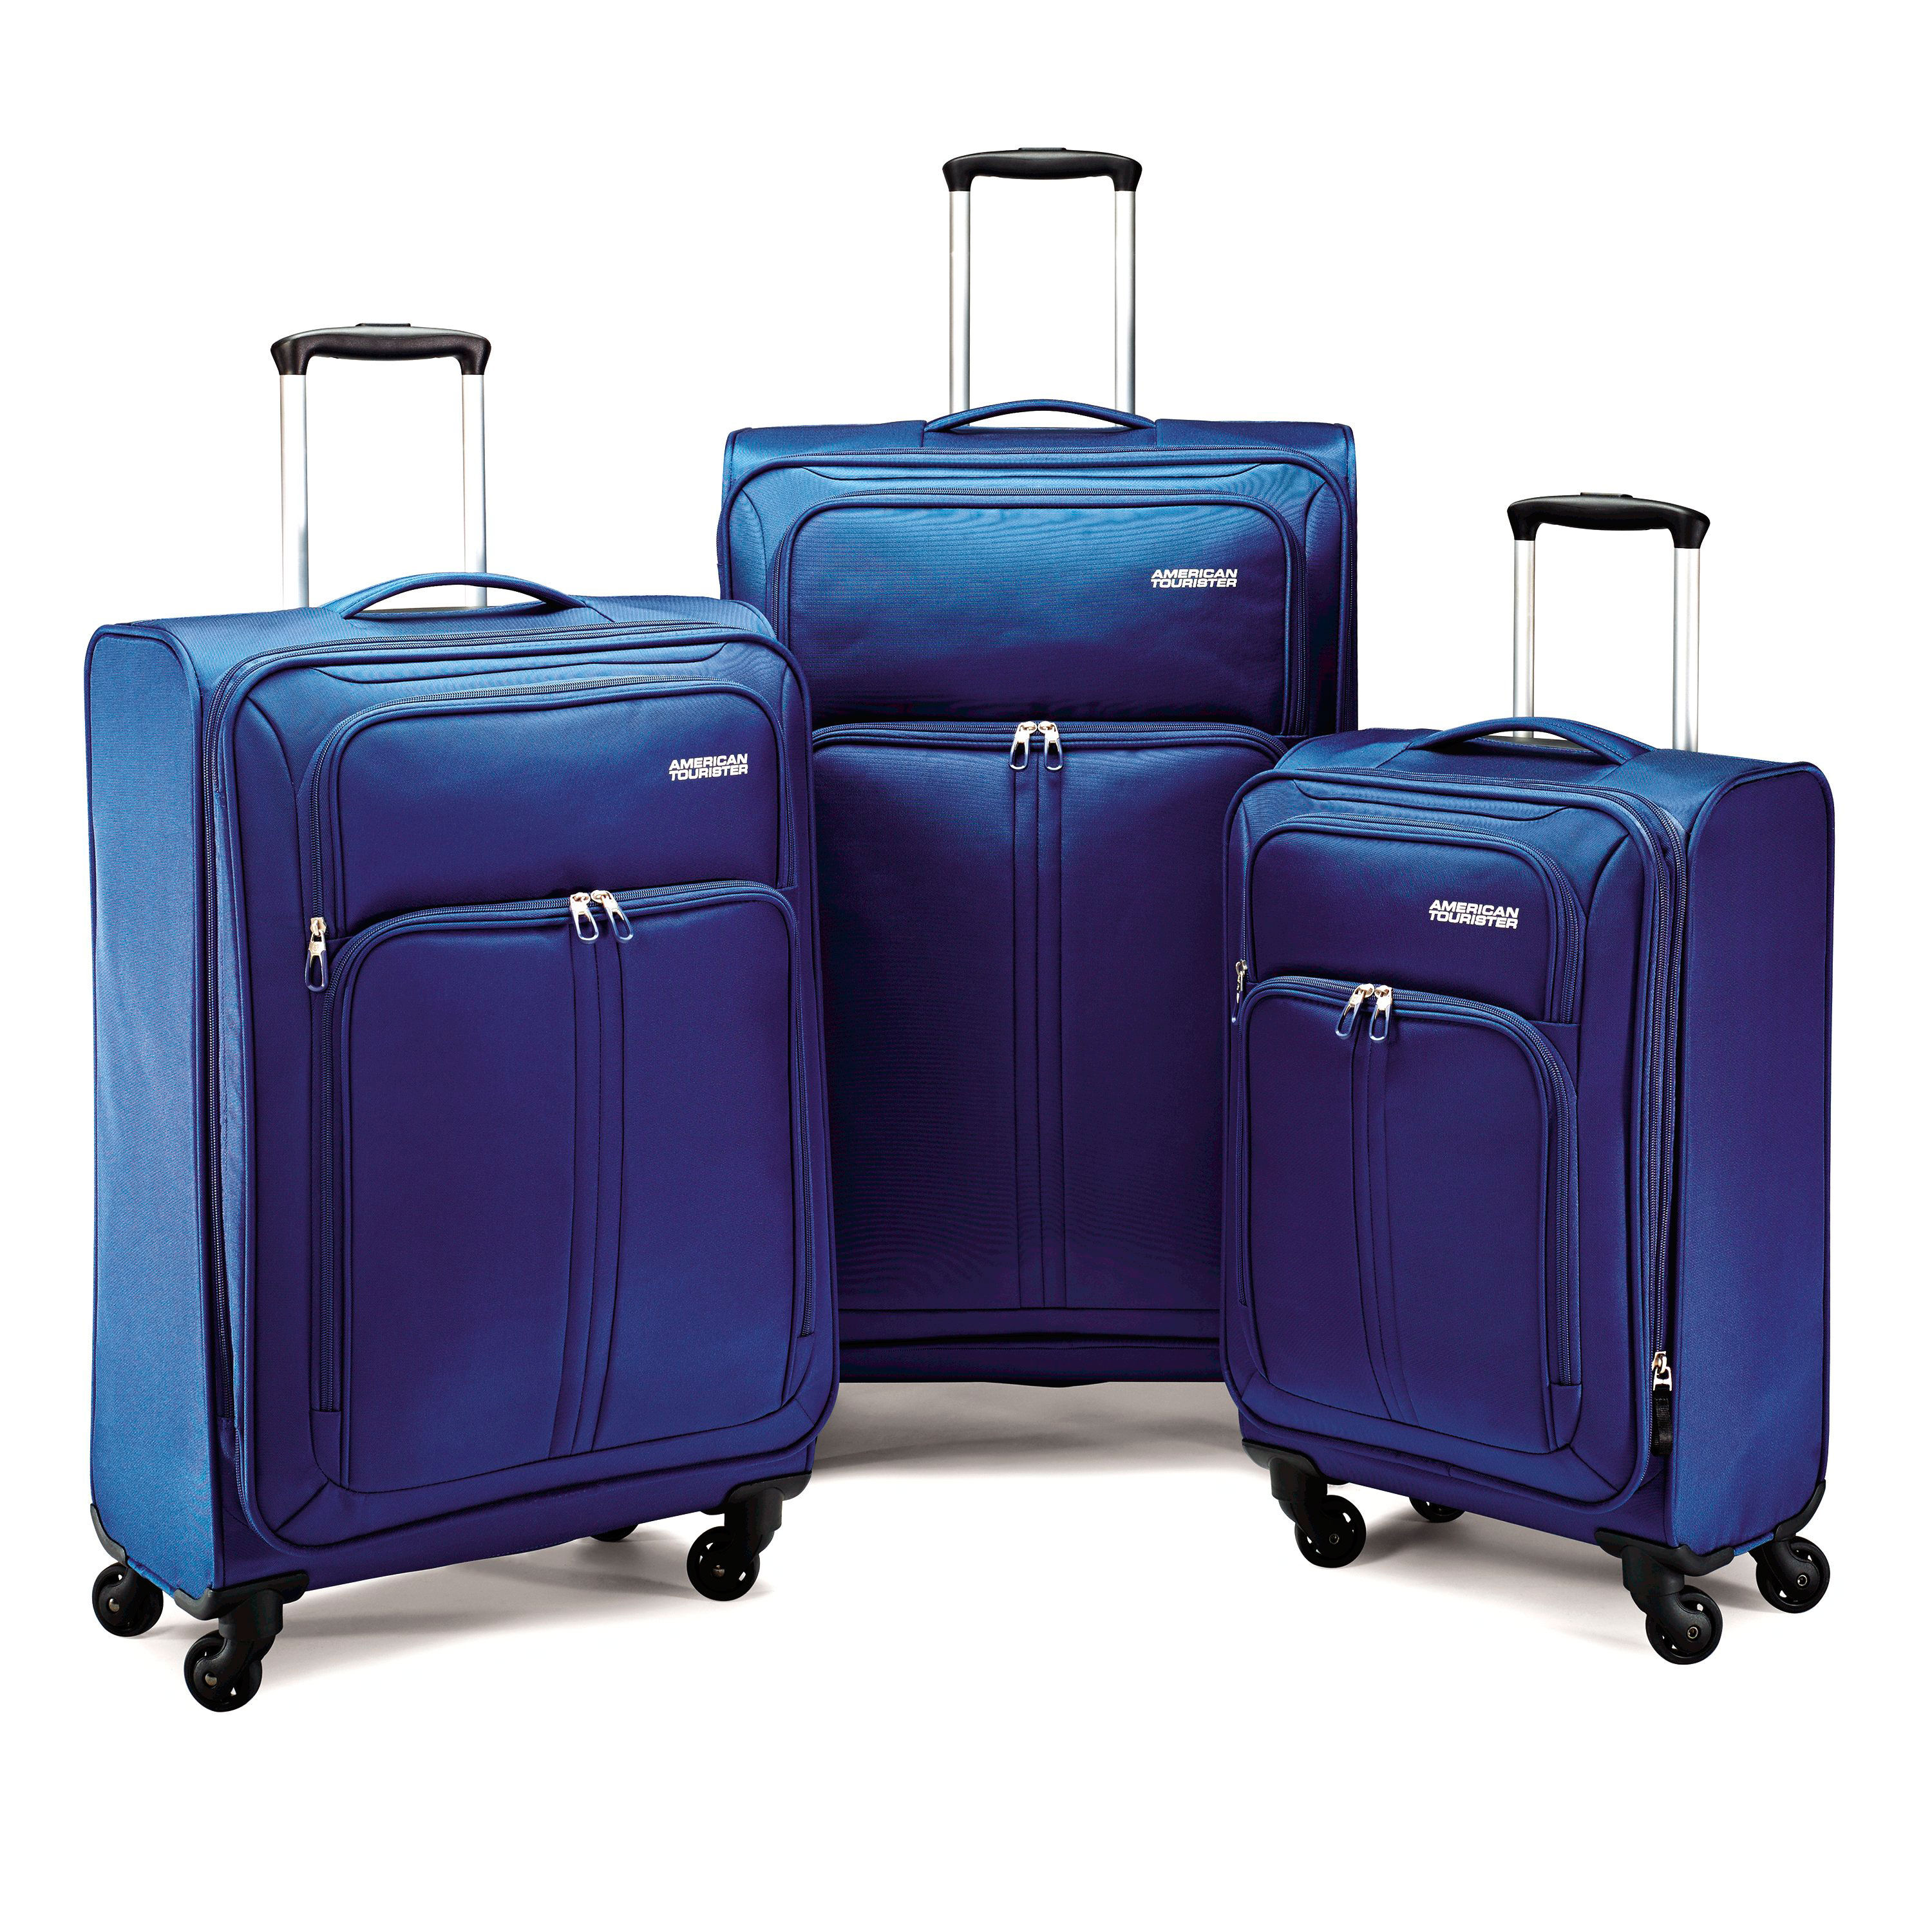 American tourister 3 piece spinner luggage set